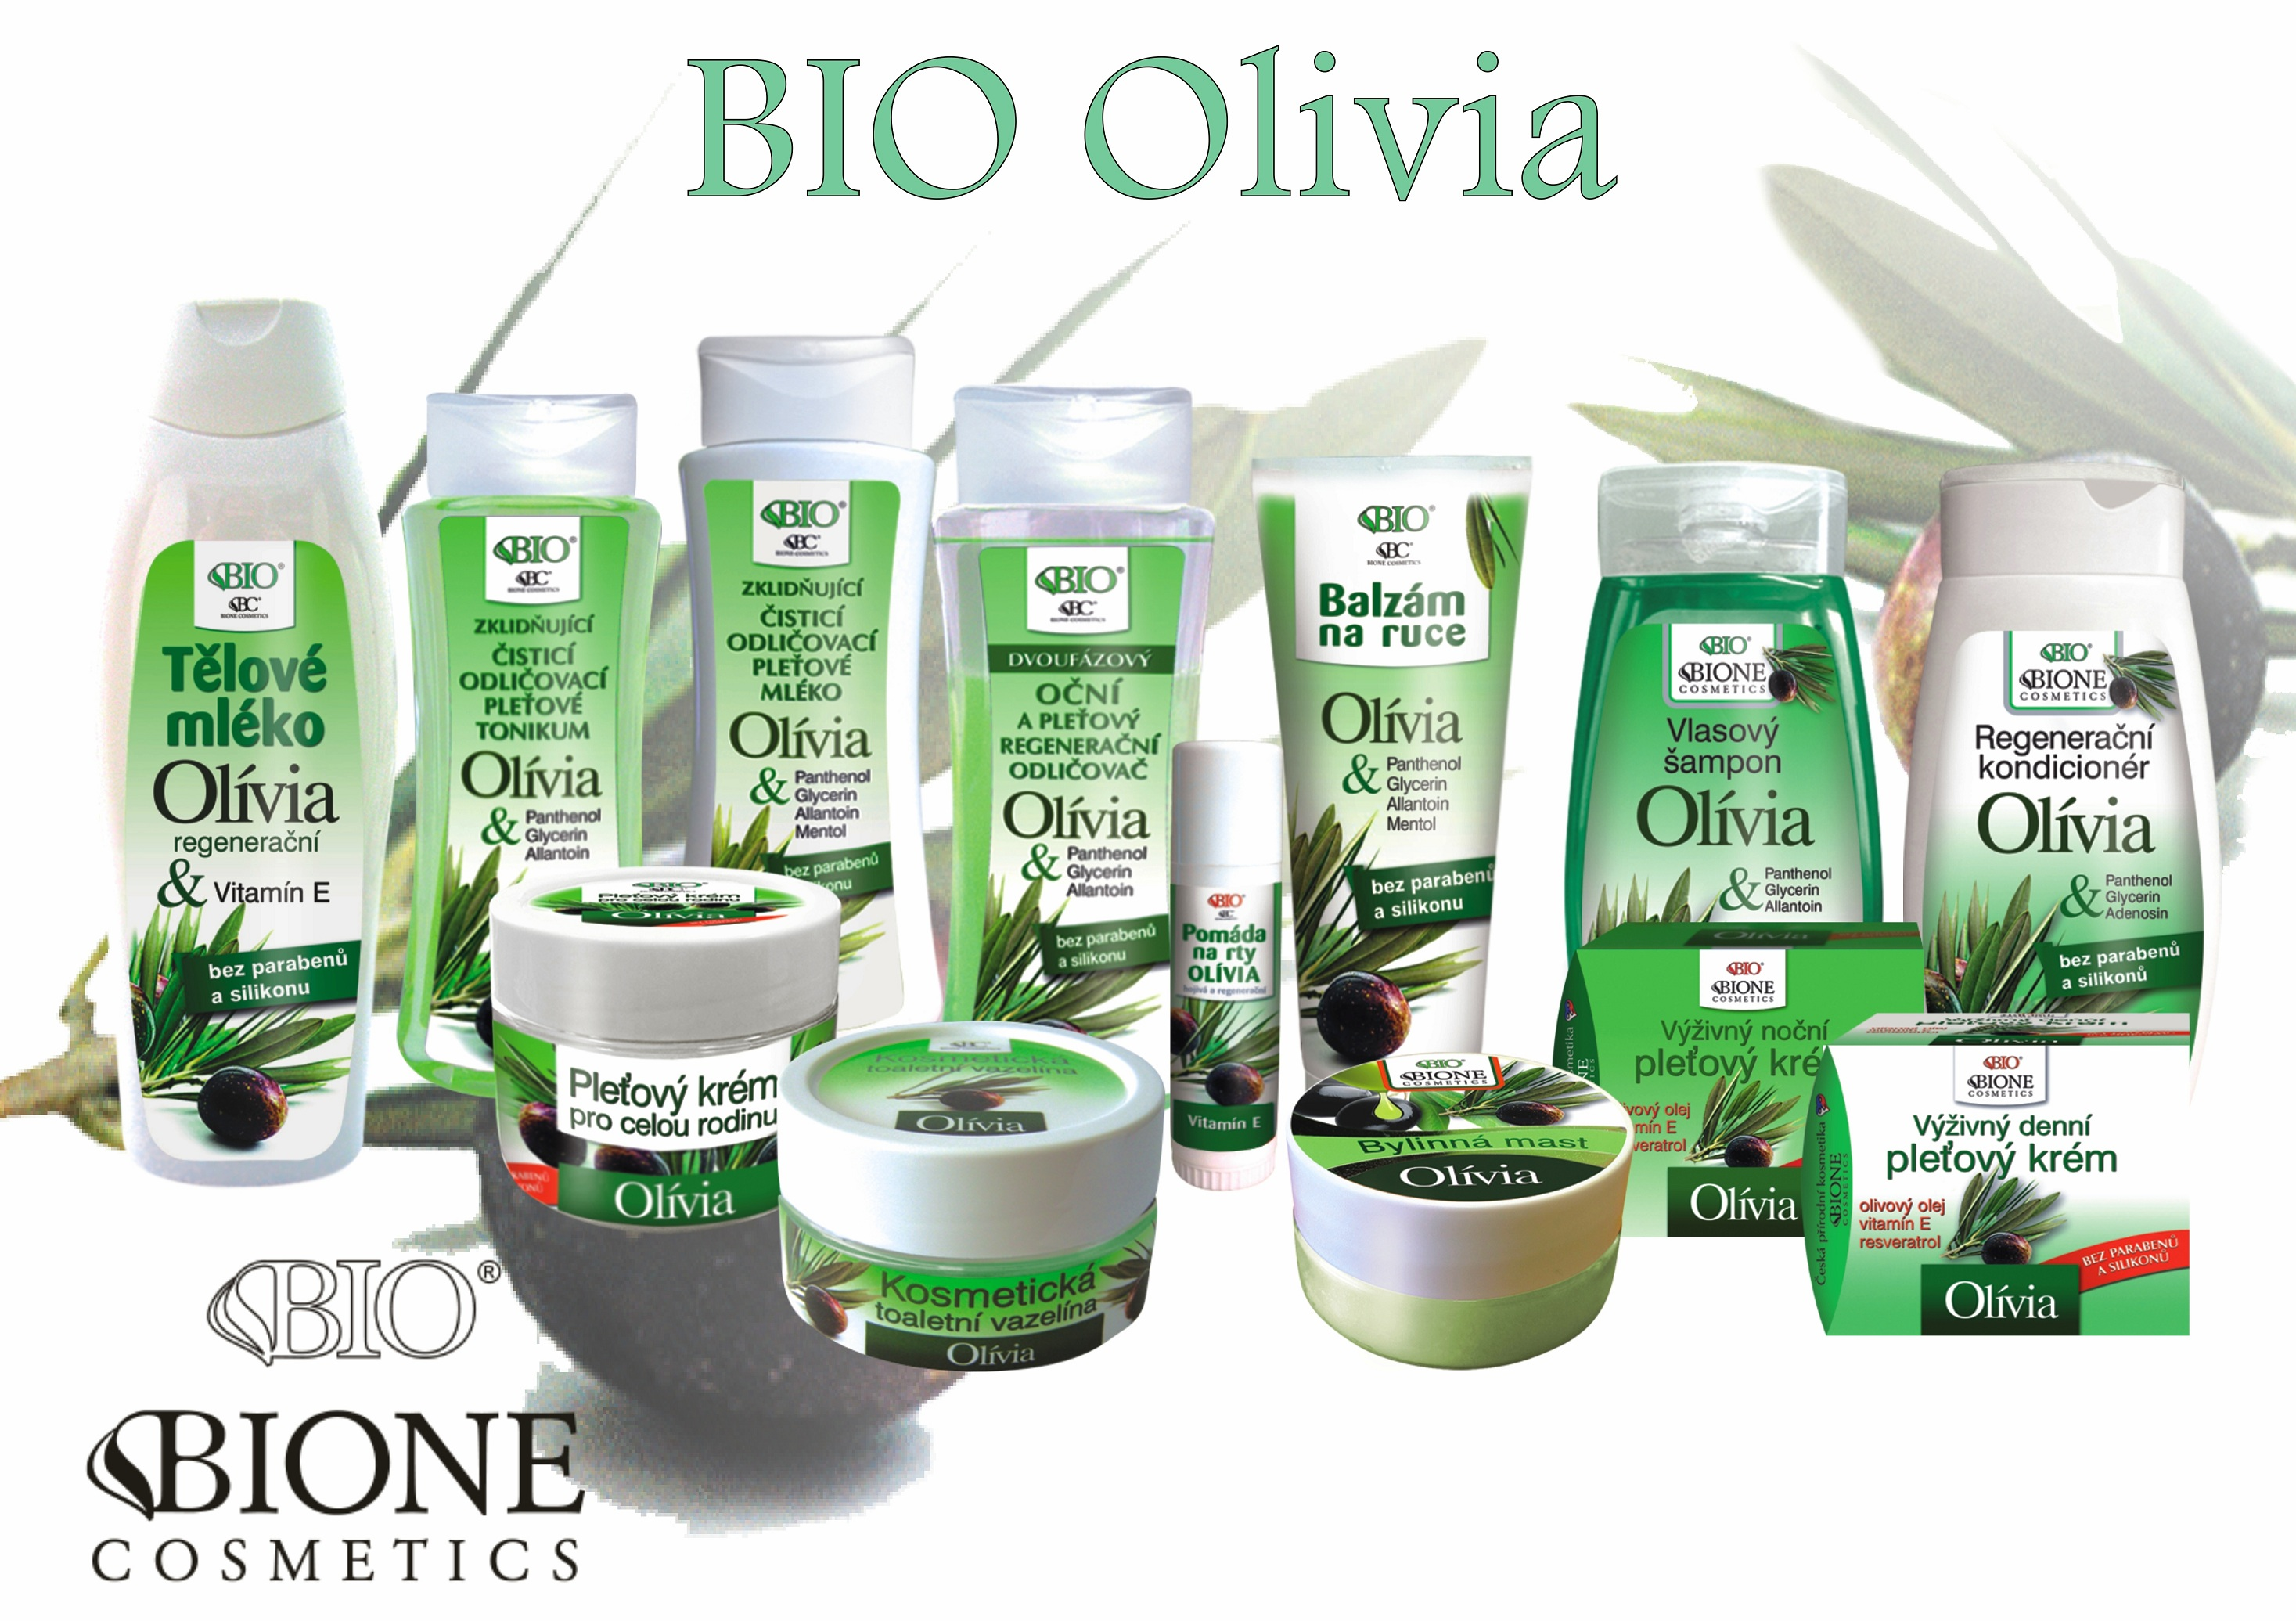 BIO-OLIVIA-all-products-new-kopie.jpg